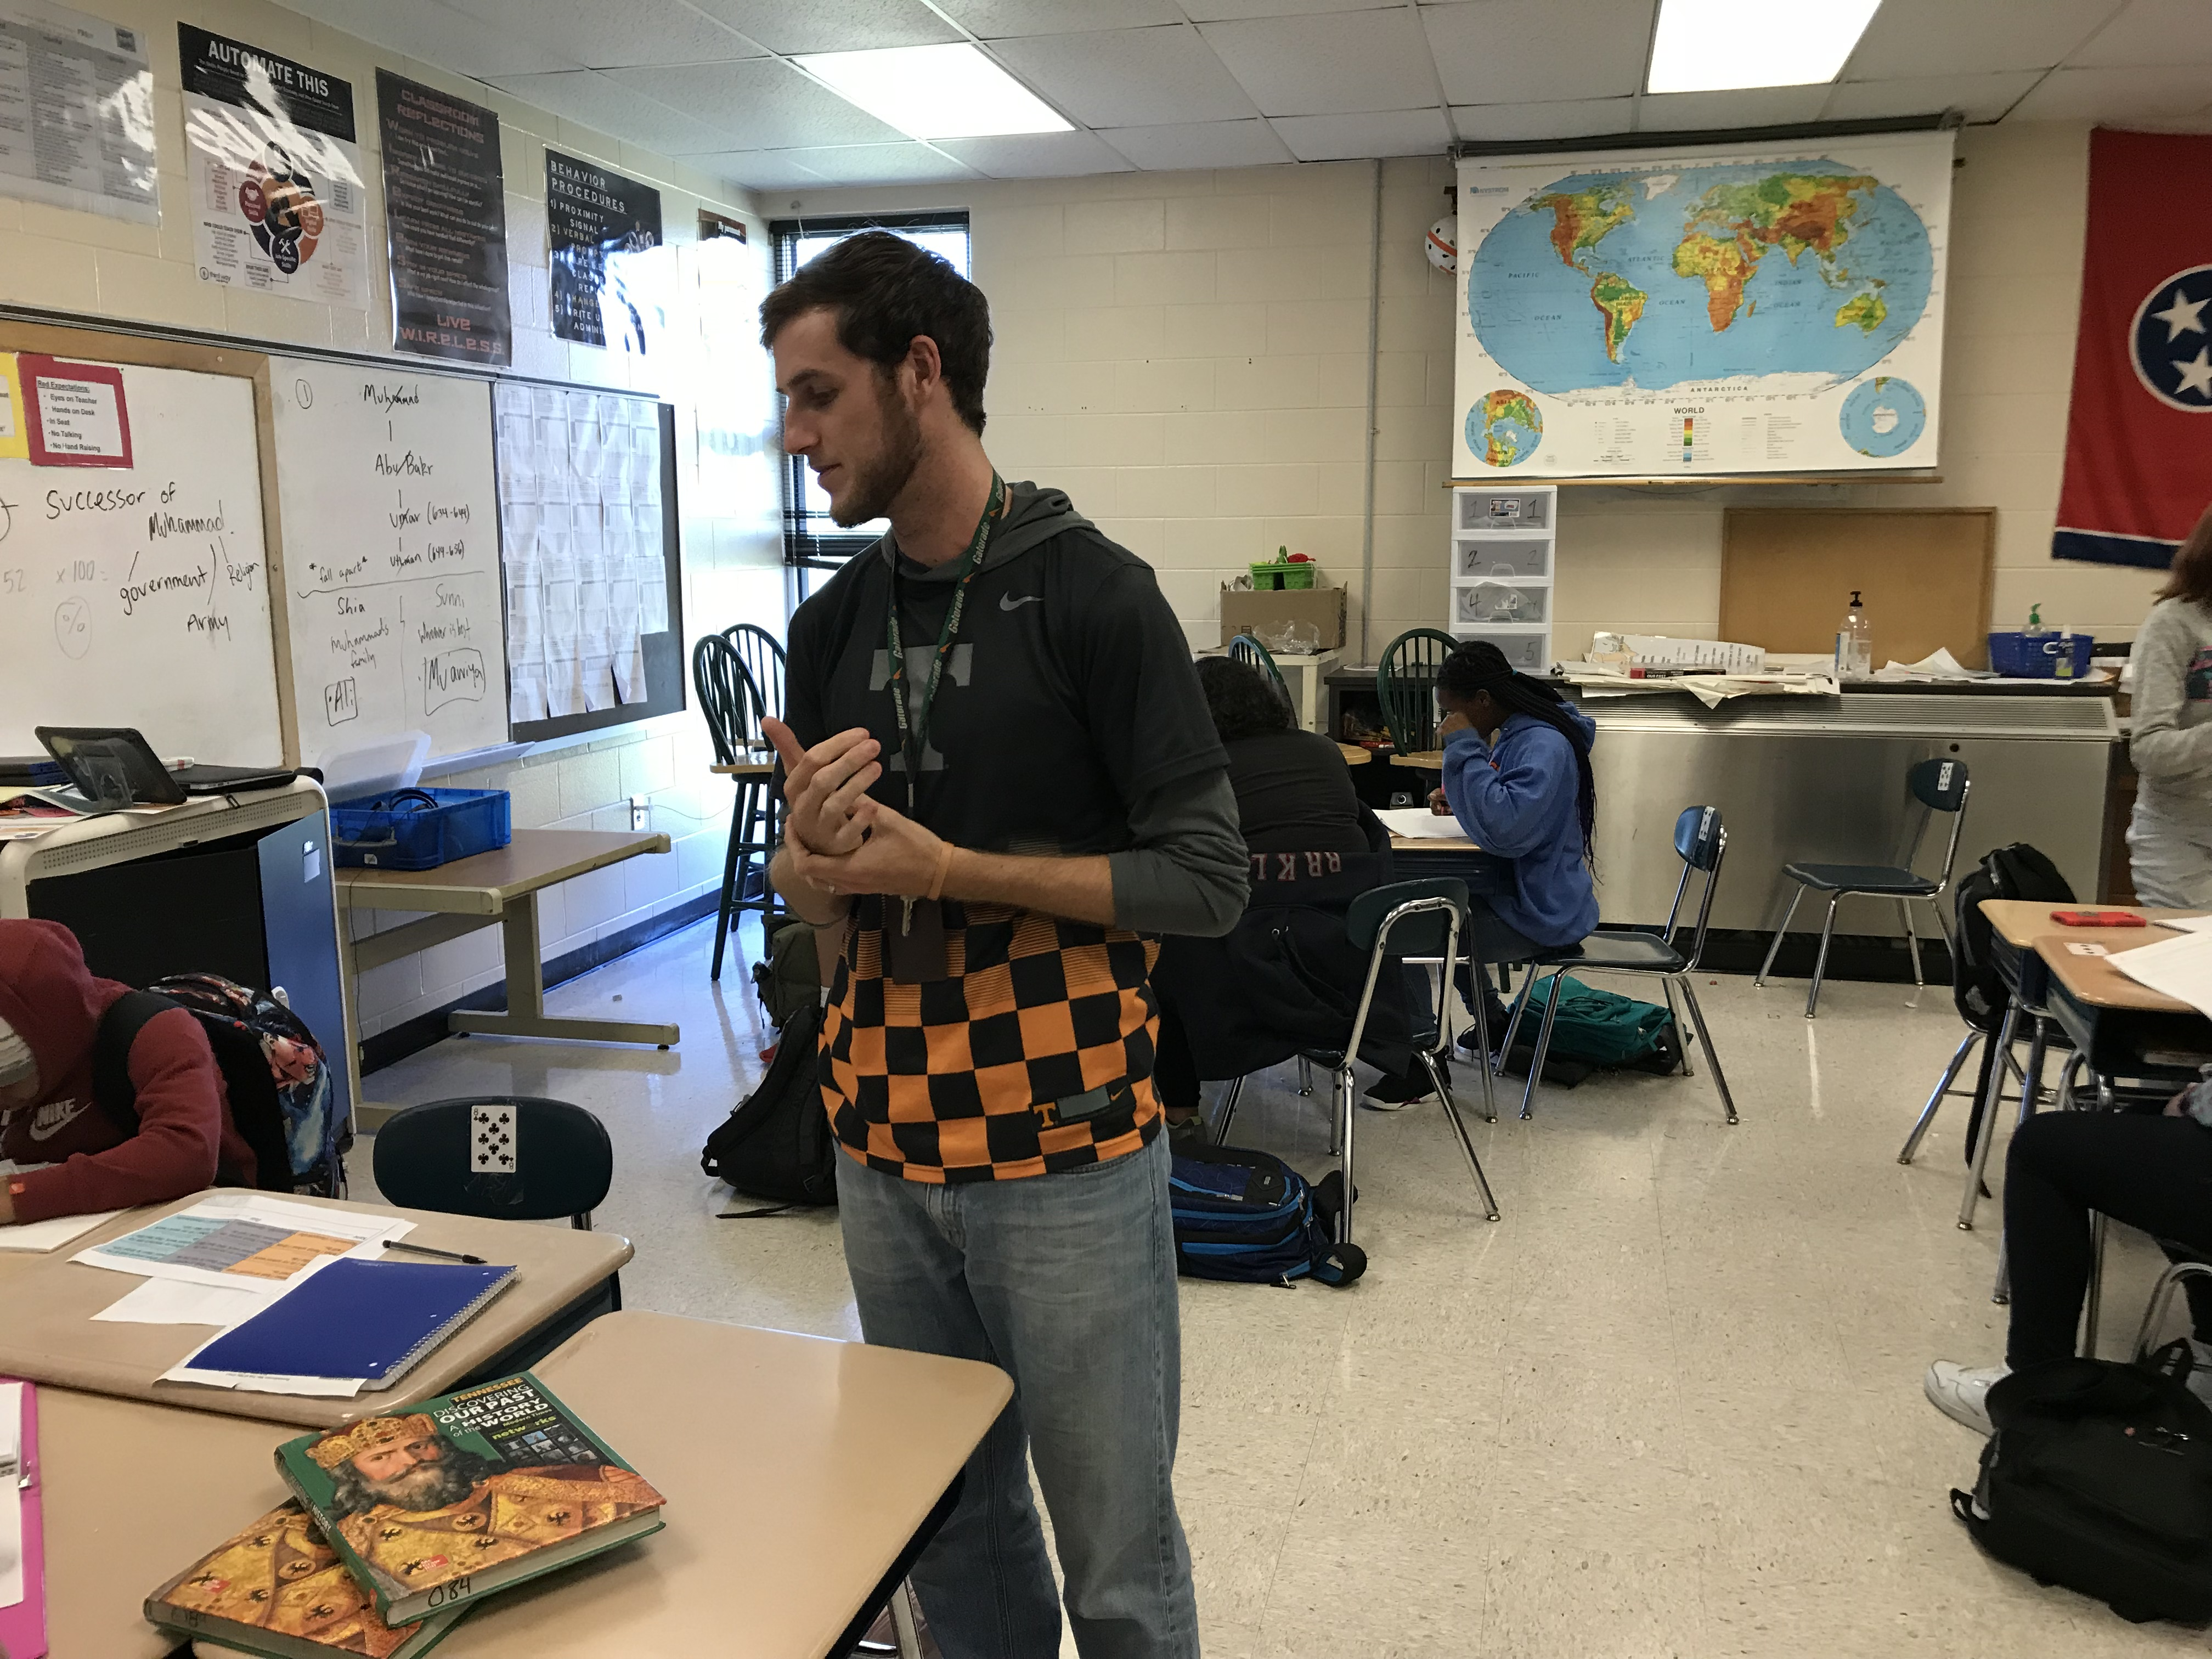 Northwest Middle School teacher Riley Scheyder visits with students on Oct. 19, 2018.